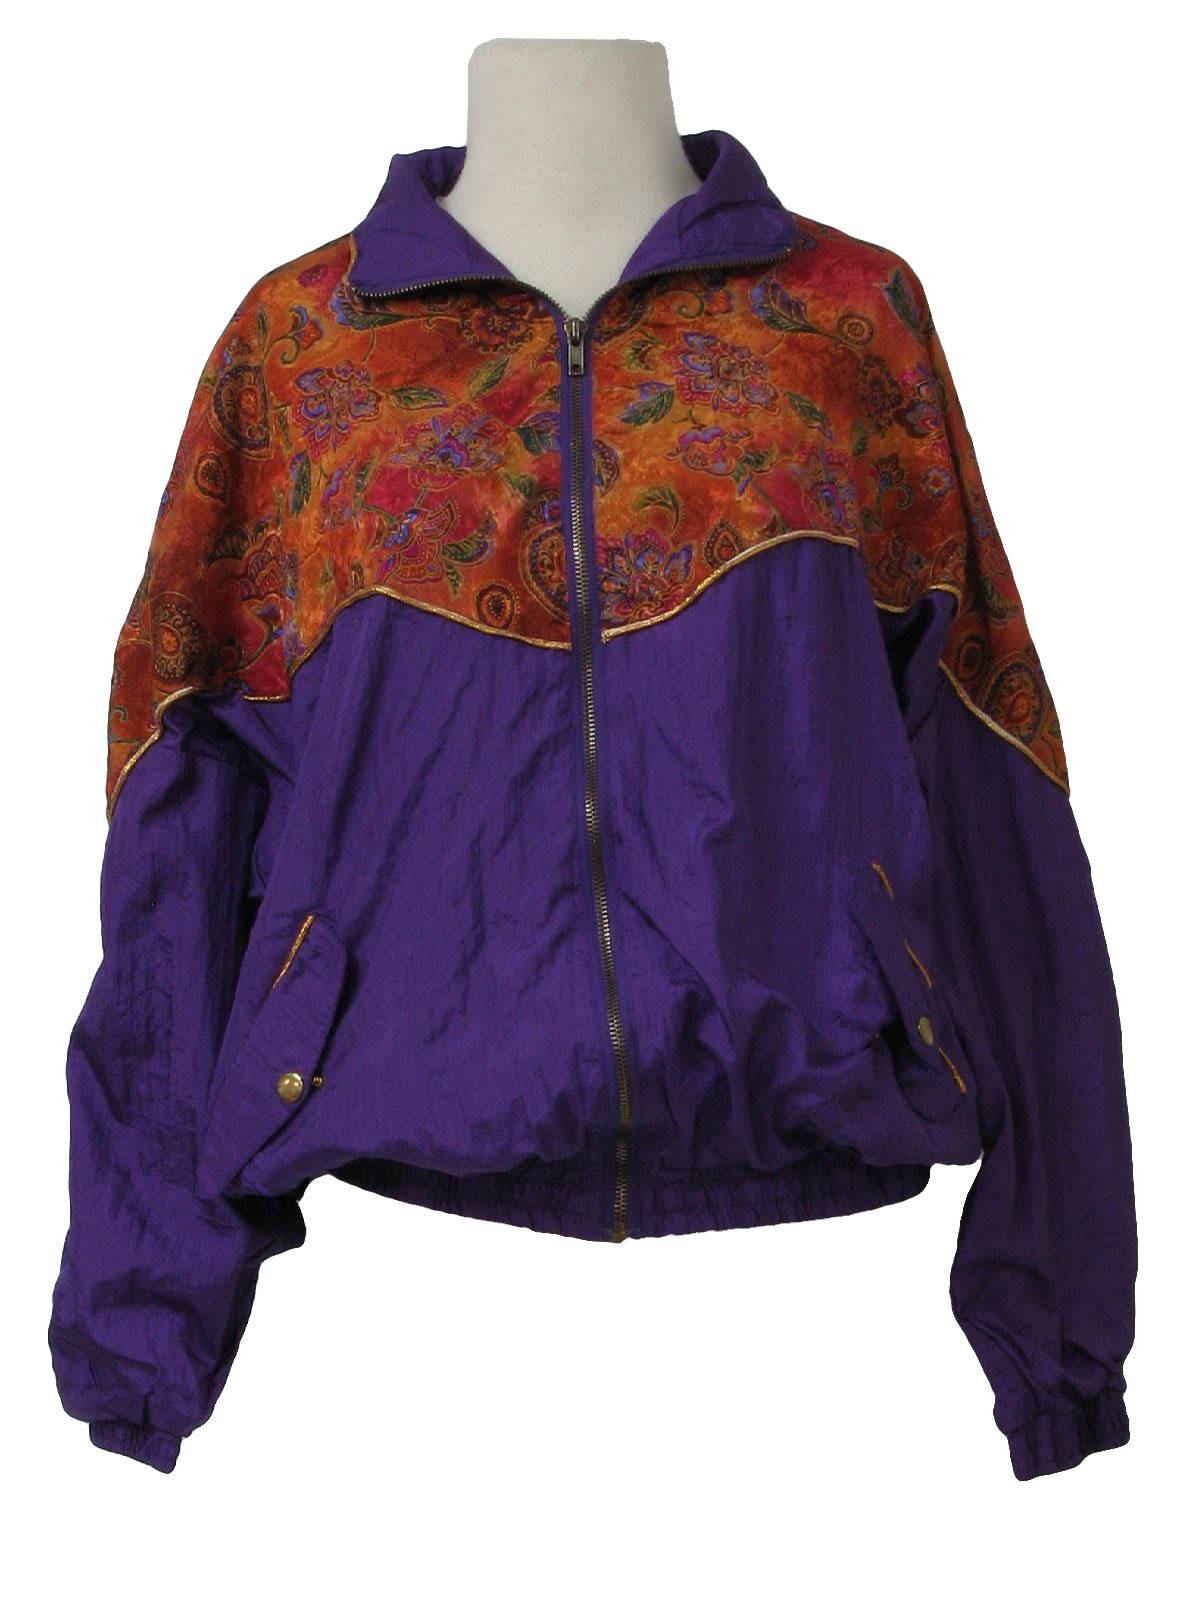 Avait 1990s Vintage Jacket: 90s -Avait- Womens purple, peachy tan ...